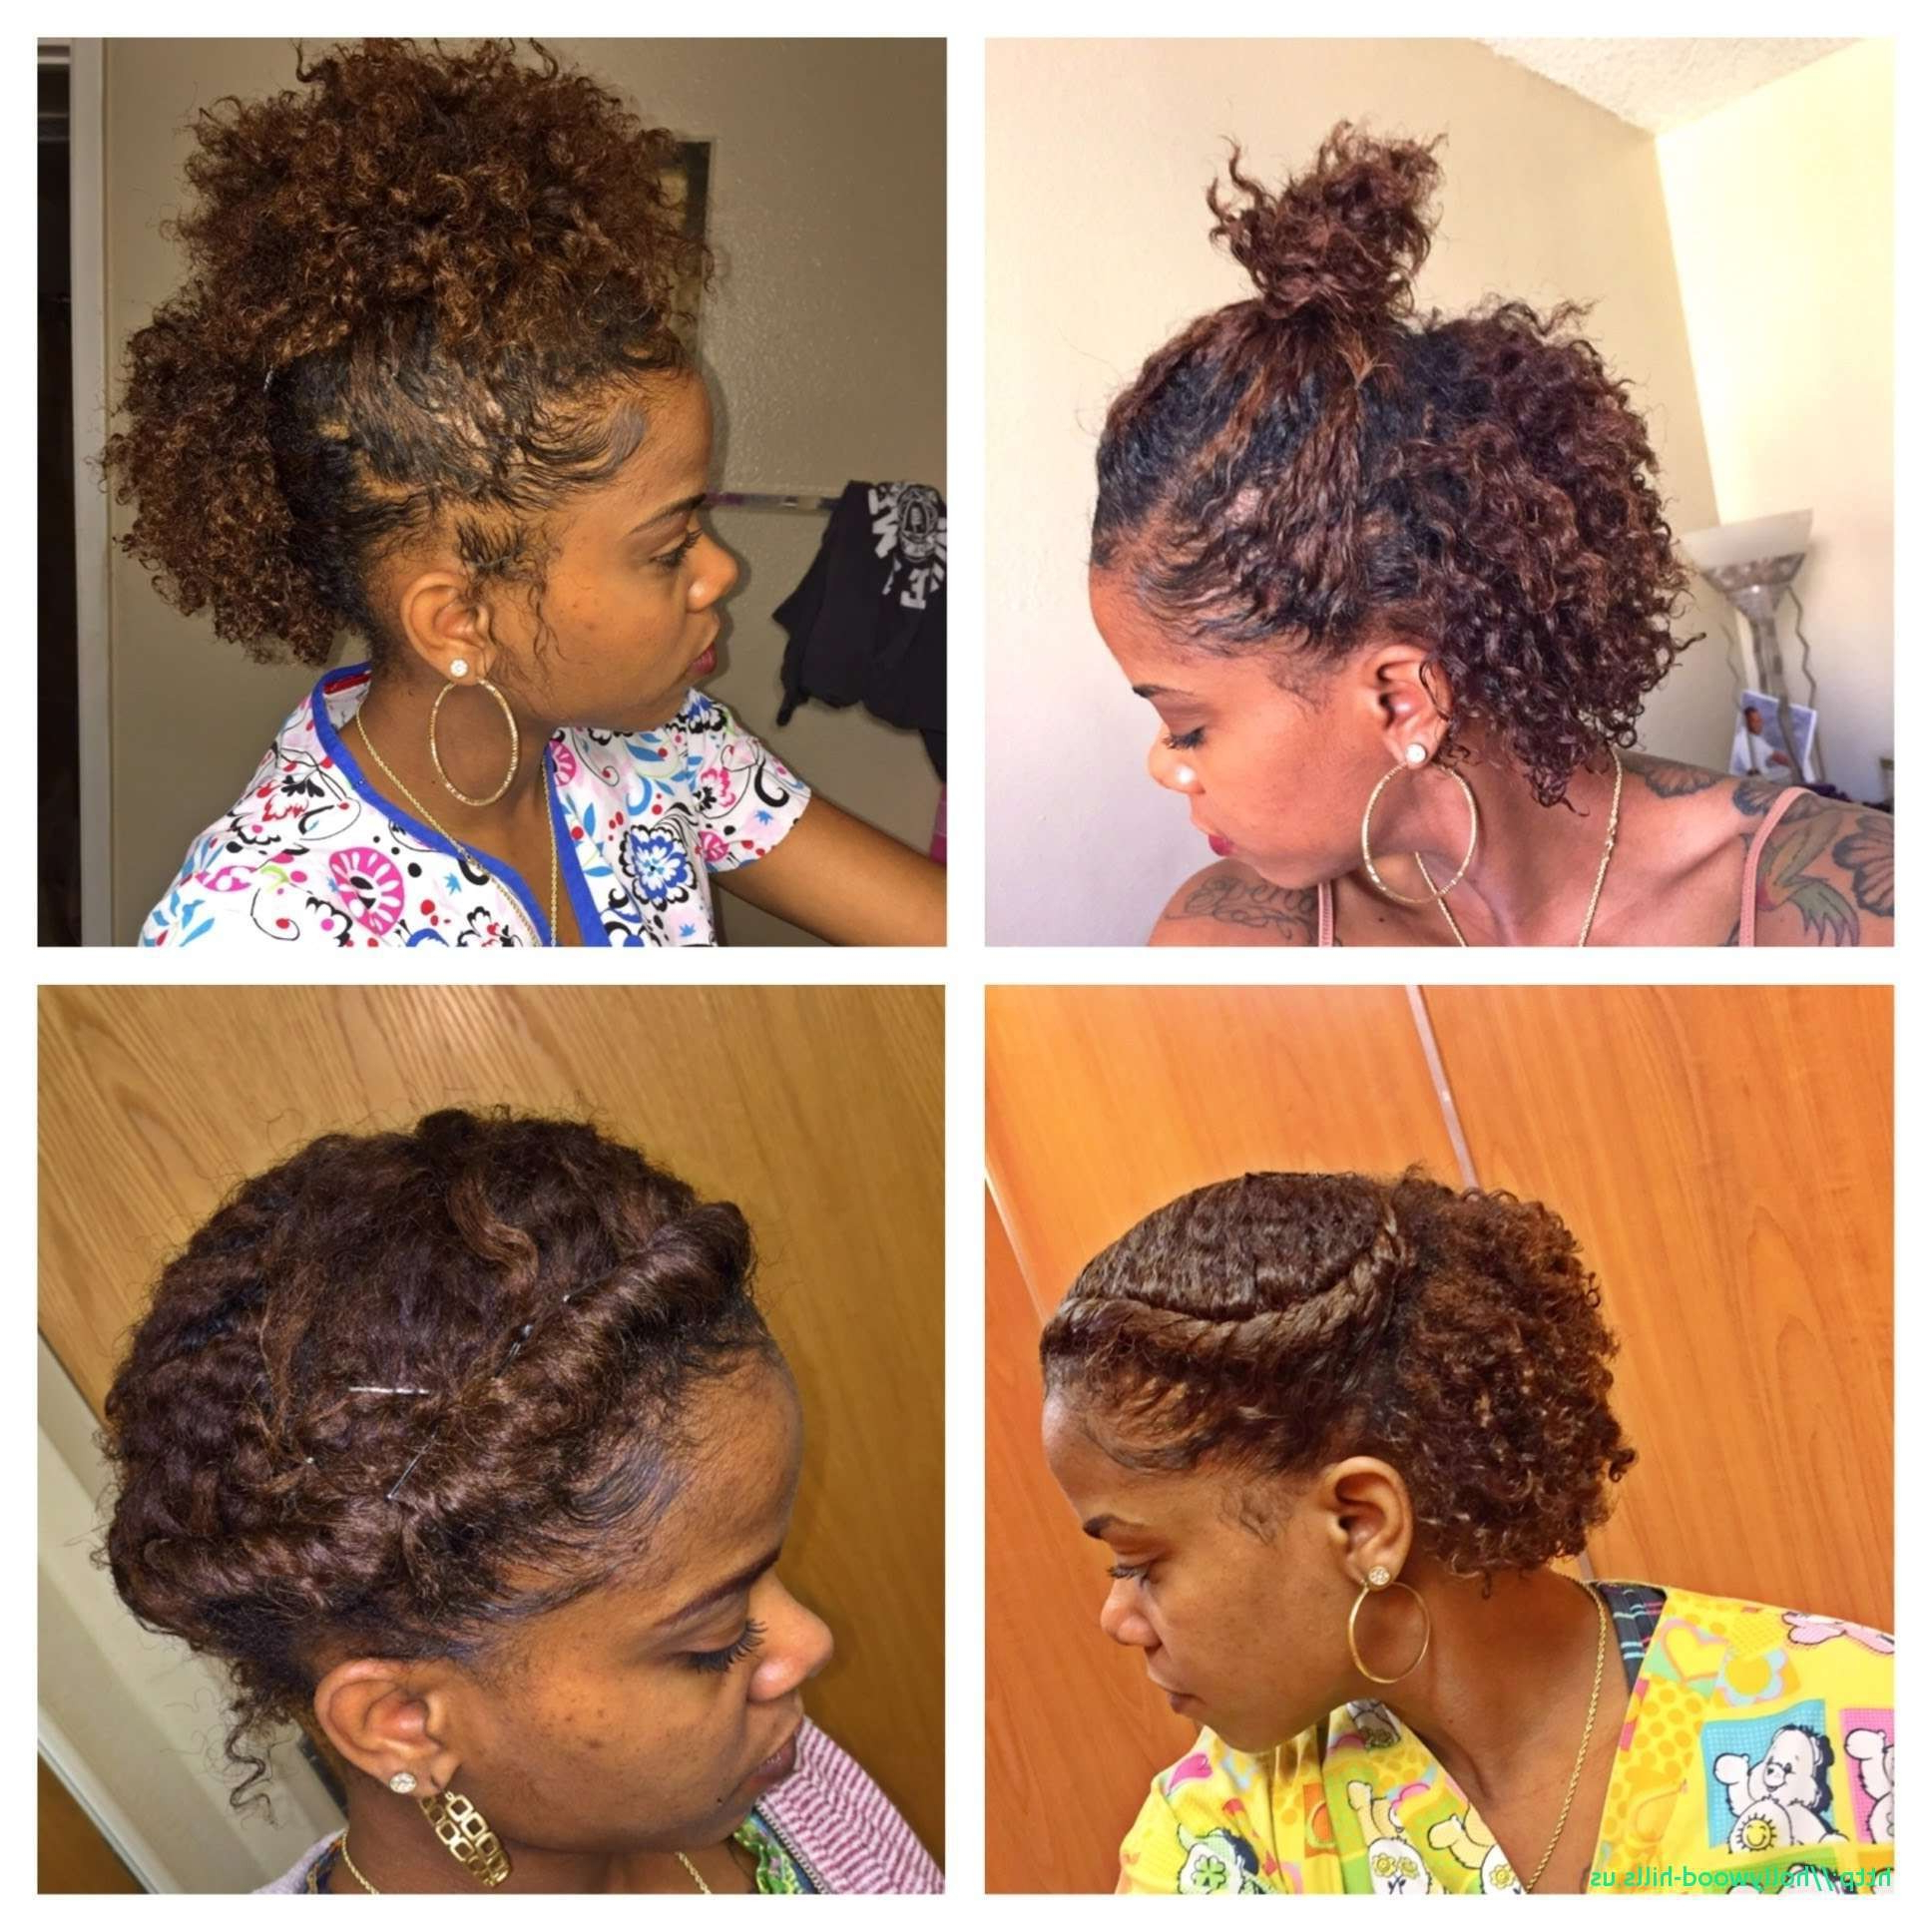 Find Out Full Gallery Of Perfect Cute Hairstyles For Naturally Curly Within Short Haircuts For Naturally Curly Hair (View 6 of 25)